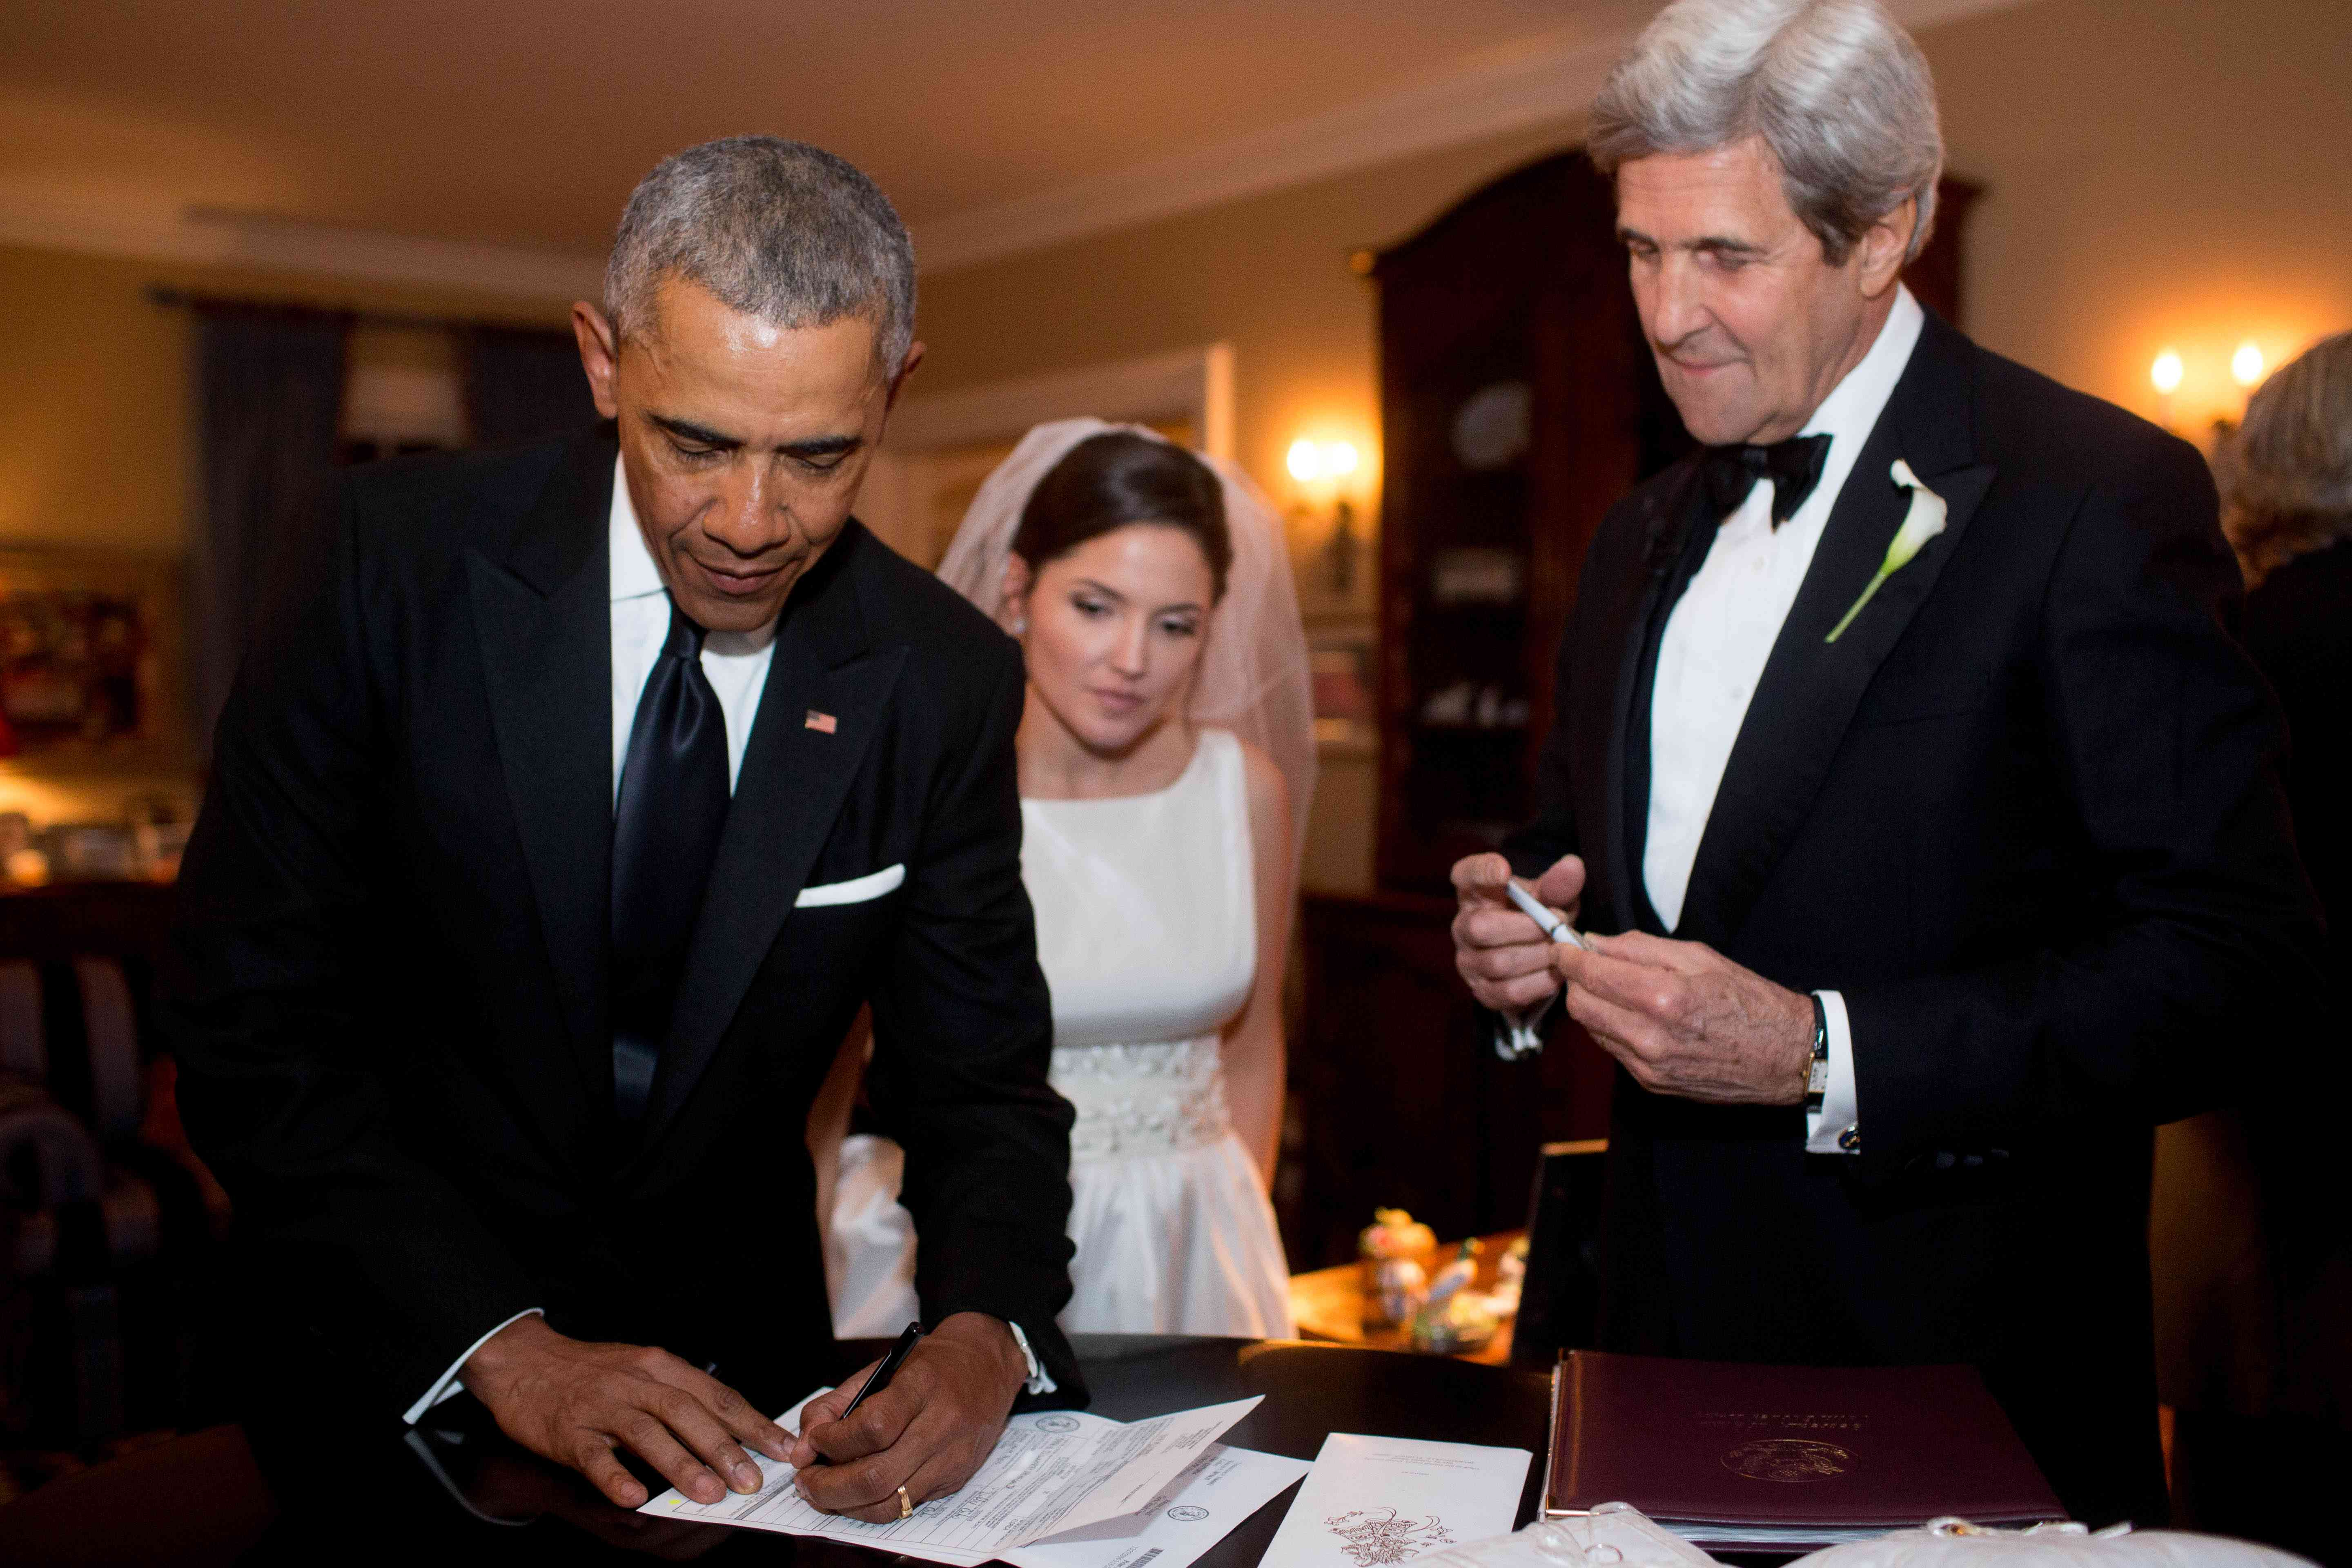 <p>President Obama and John Kerry</p><br><br>